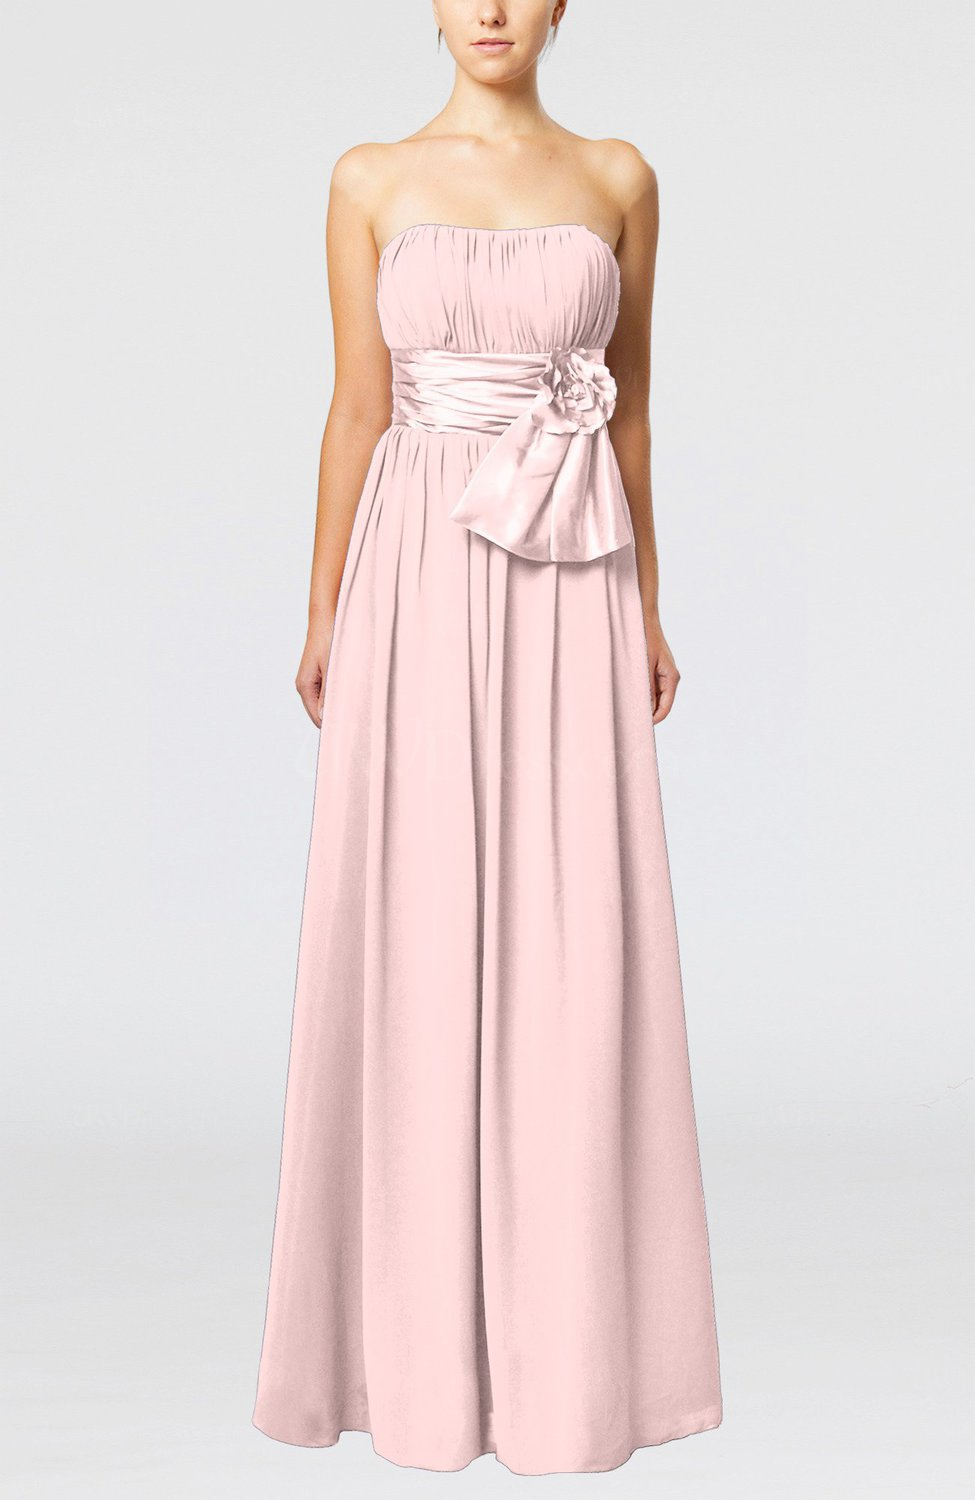 Pastel Pink Plain Column Zipper Chiffon Floor Length Wedding Guest